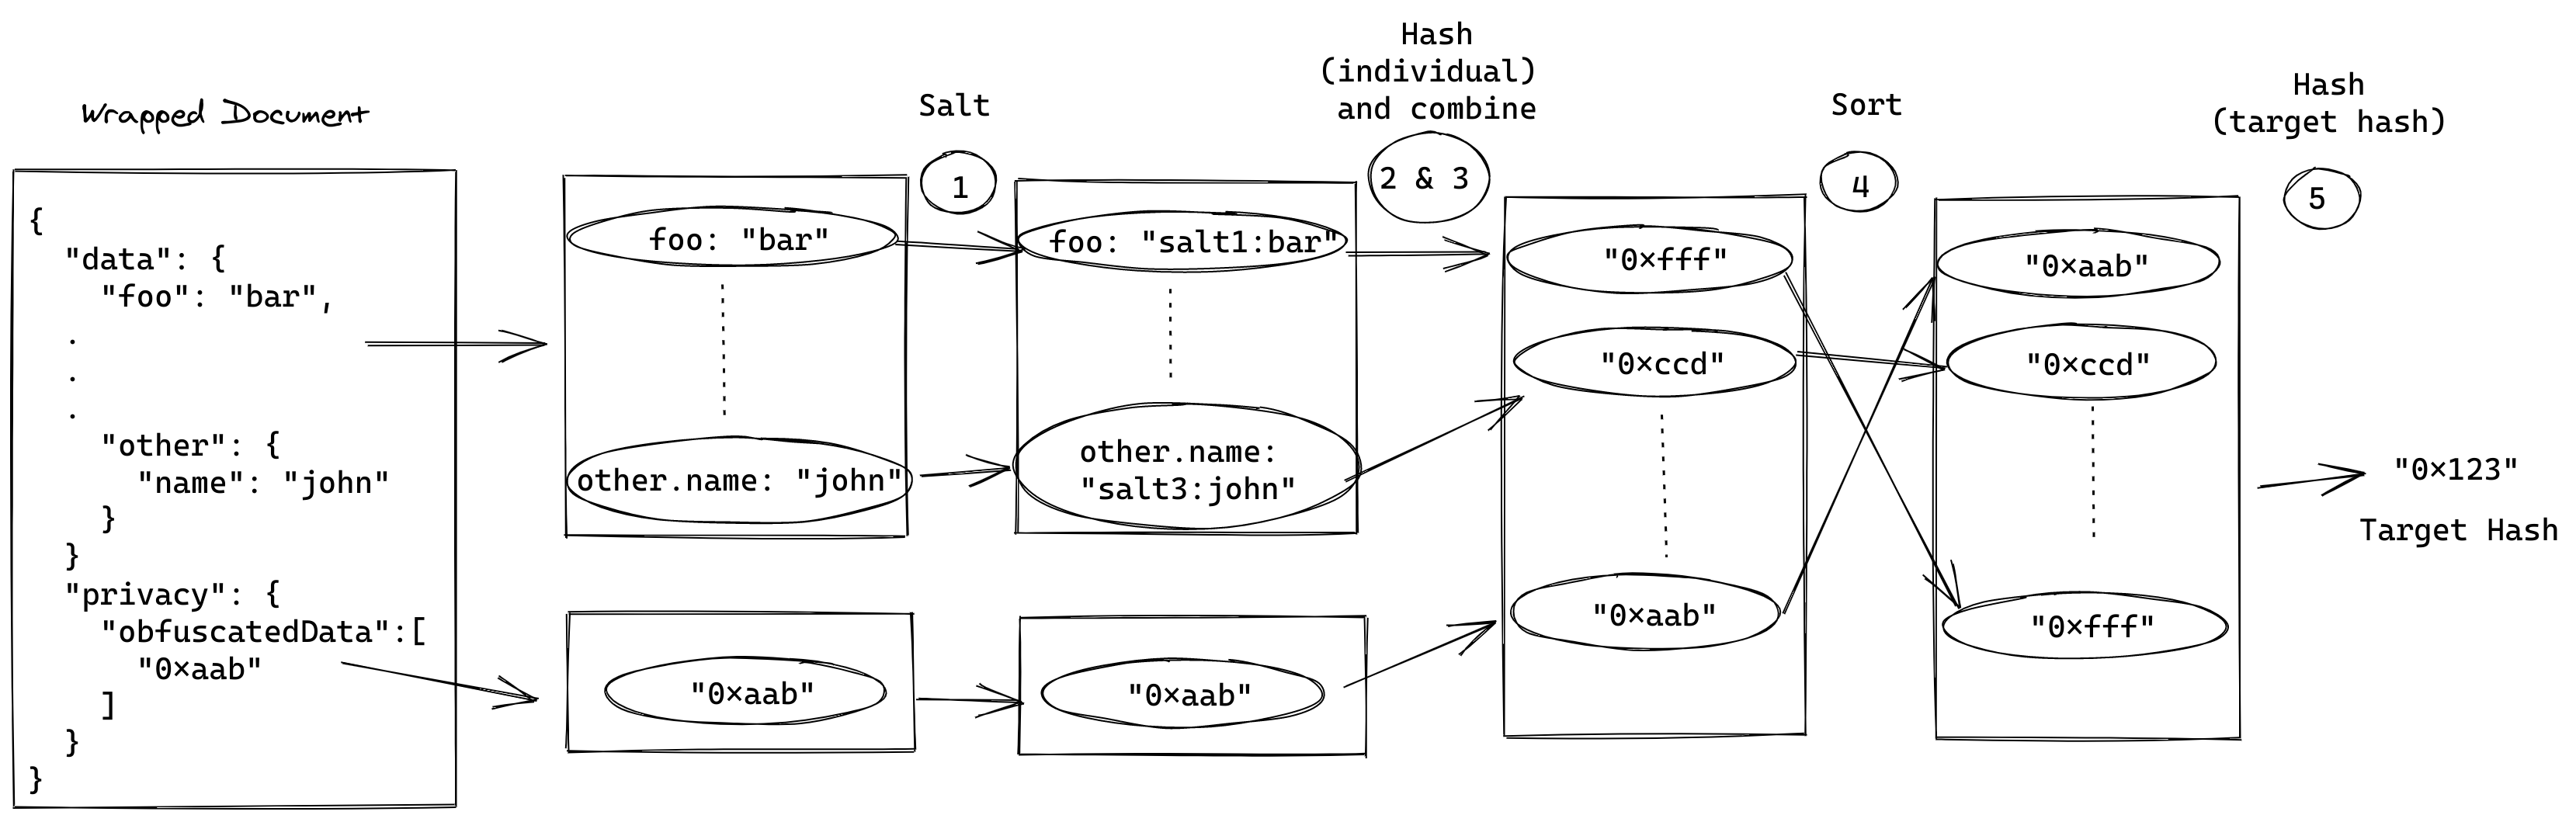 Compute target hash with data obfuscation